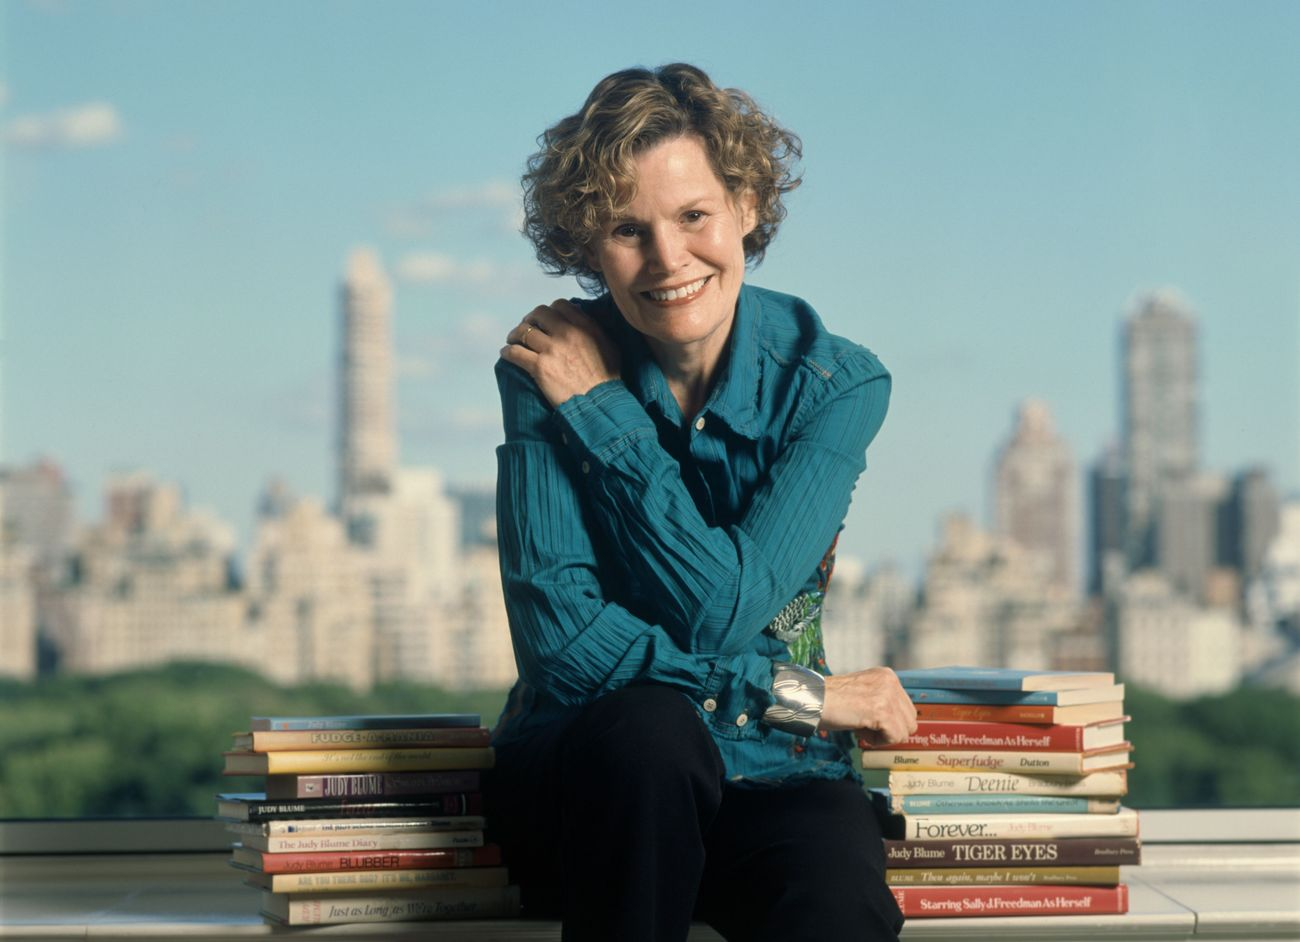 Are You There Judy Blume It S Me Molly The Forward